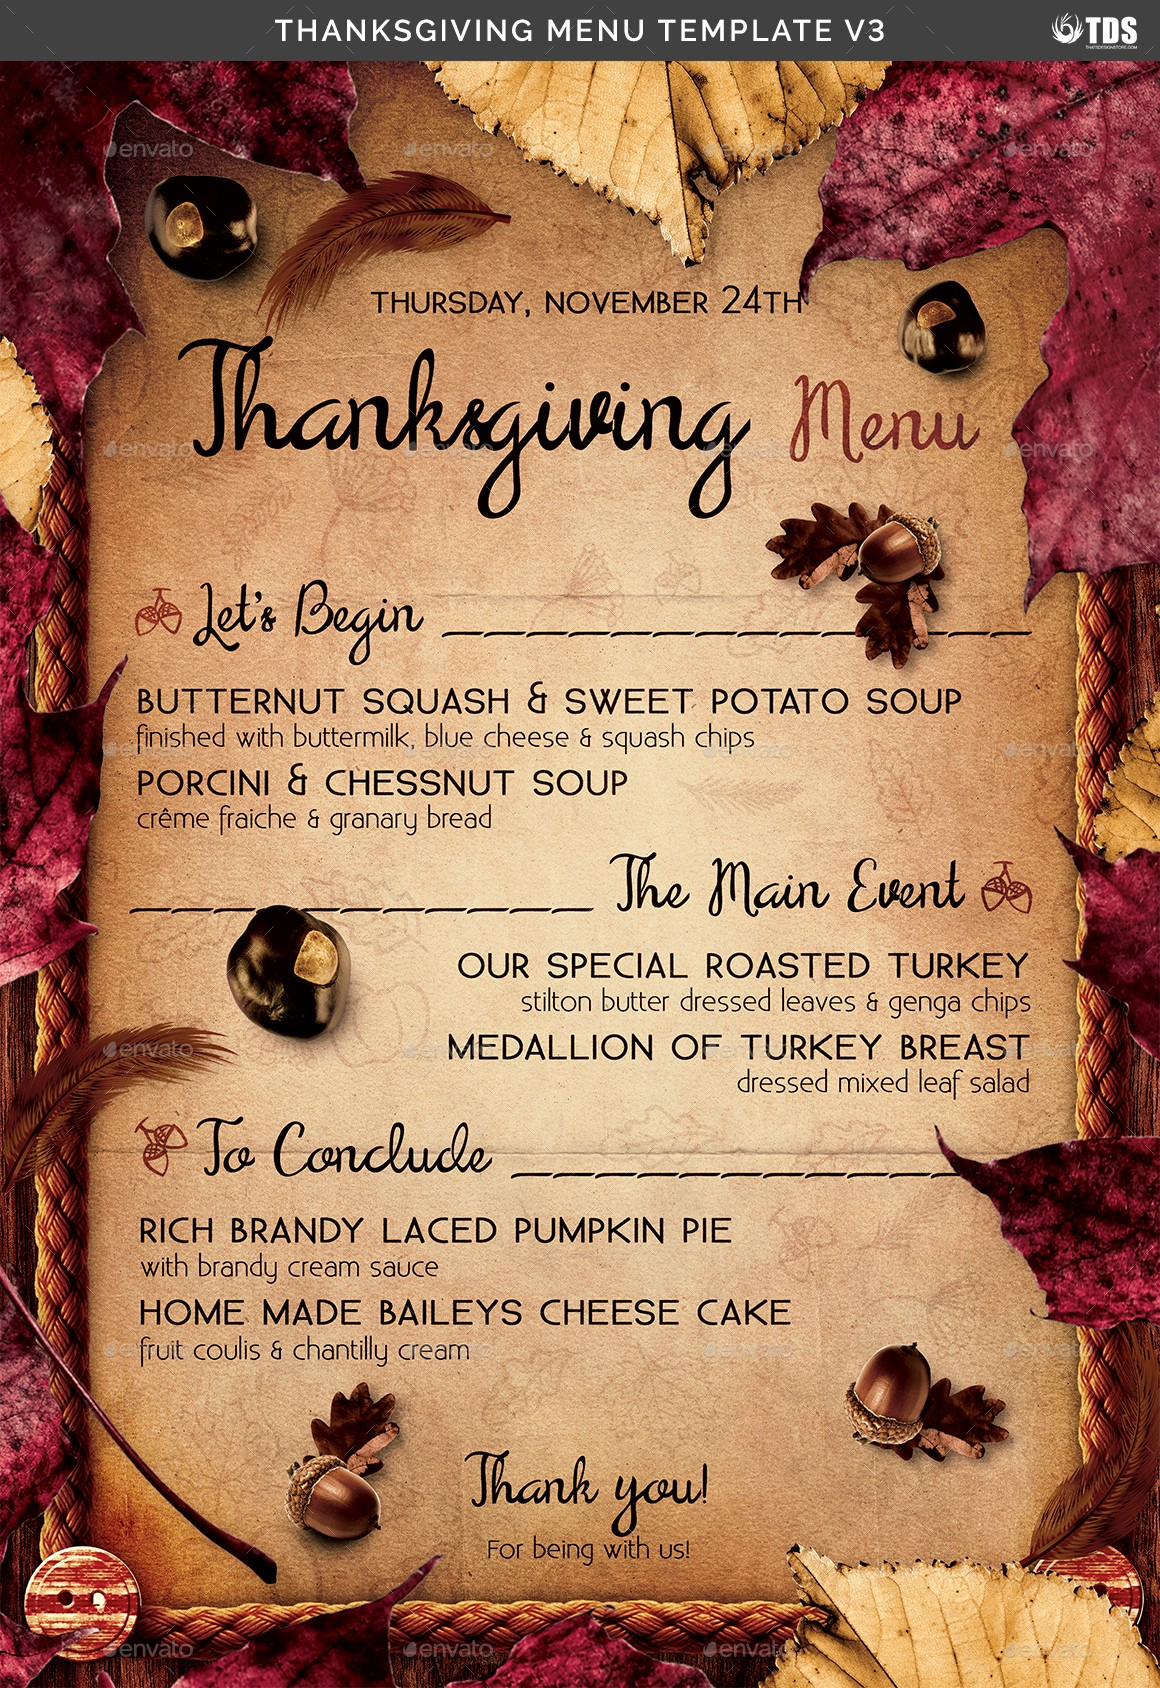 Printable Thanksgiving Menu Template Free Unique Thanksgiving Menu Template V3 by Lou606